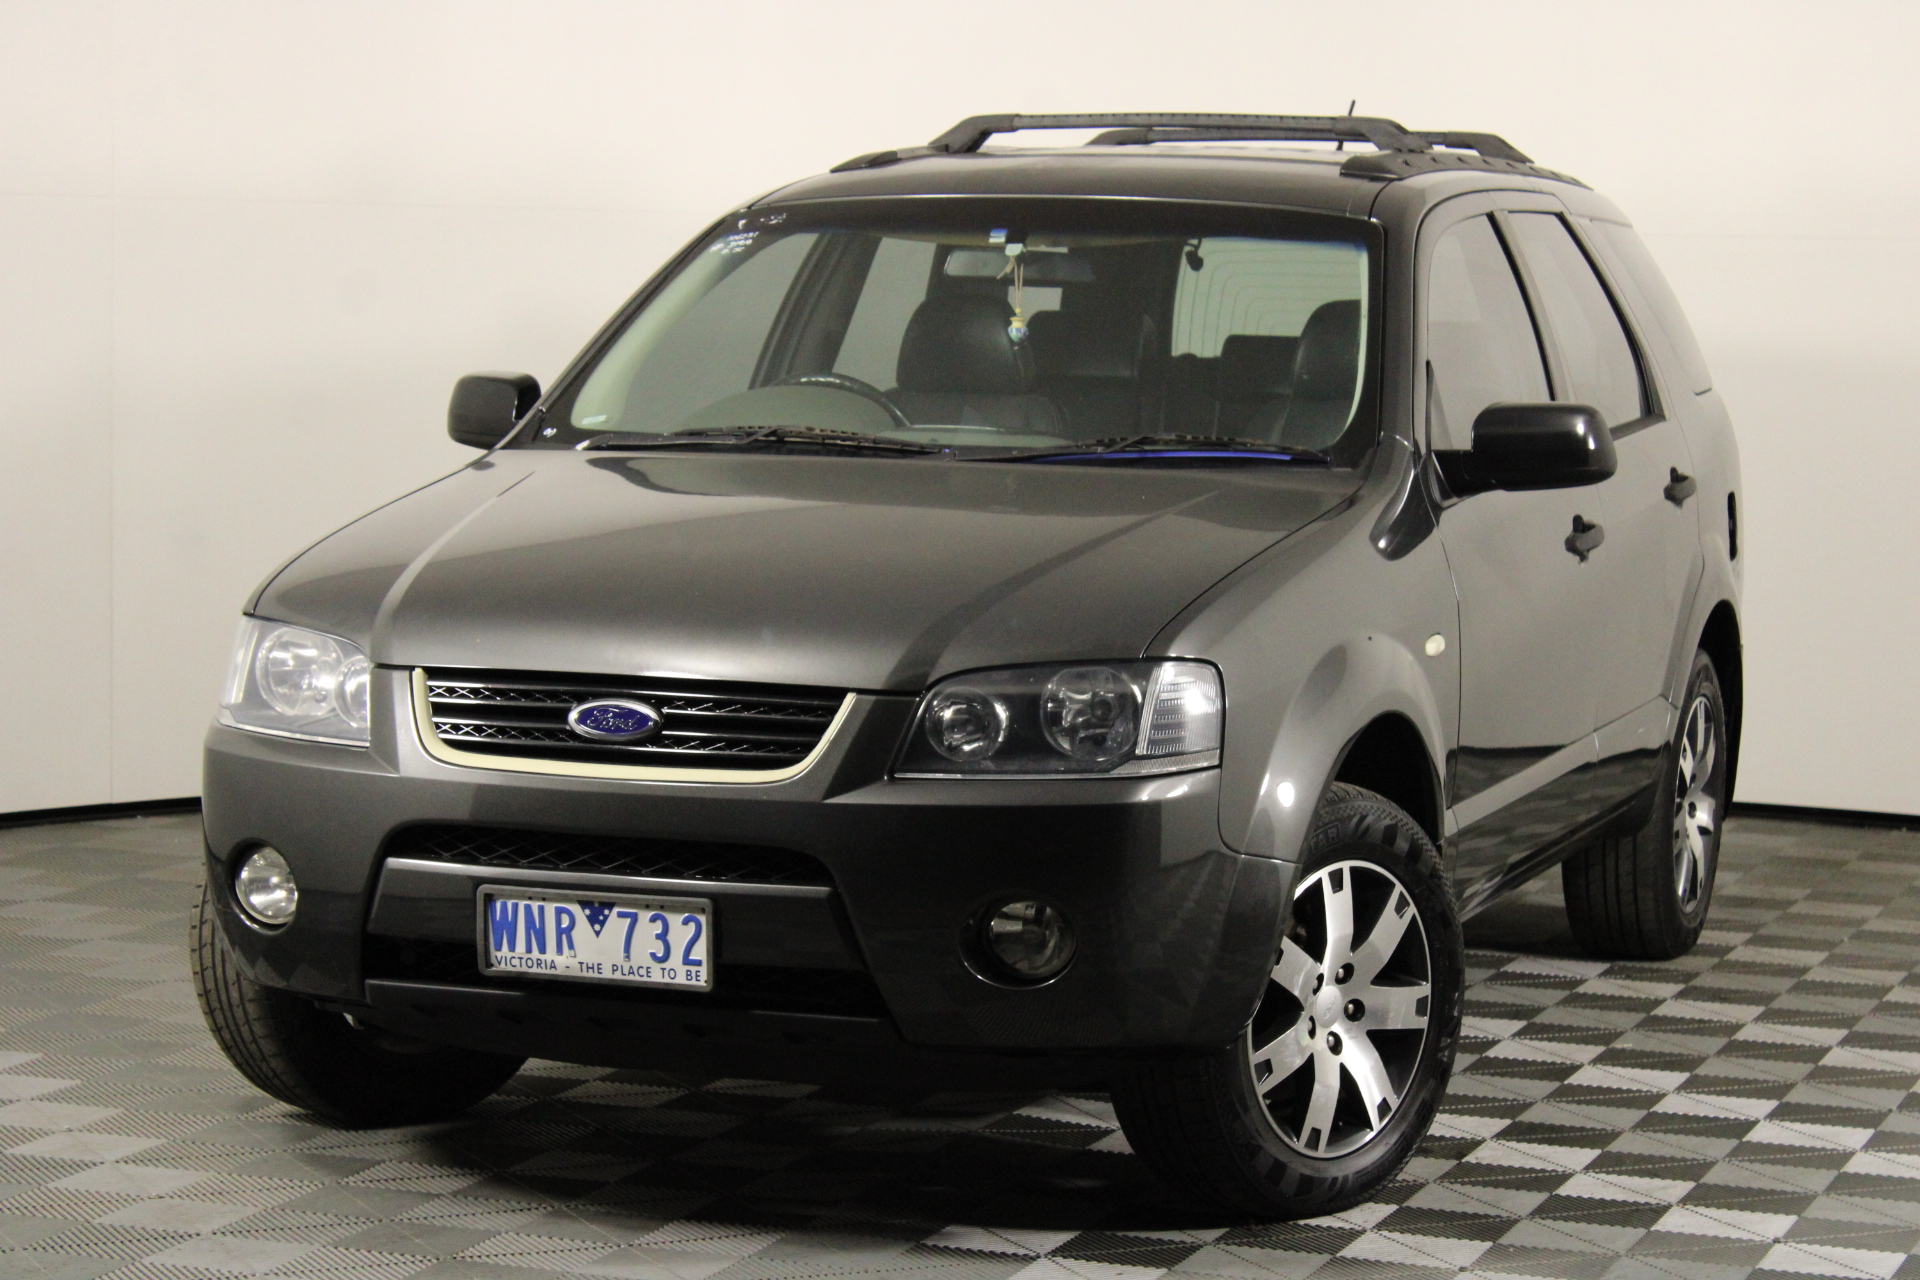 2008 Ford Territory TX (RWD) SY Automatic 7 Seats Wagon